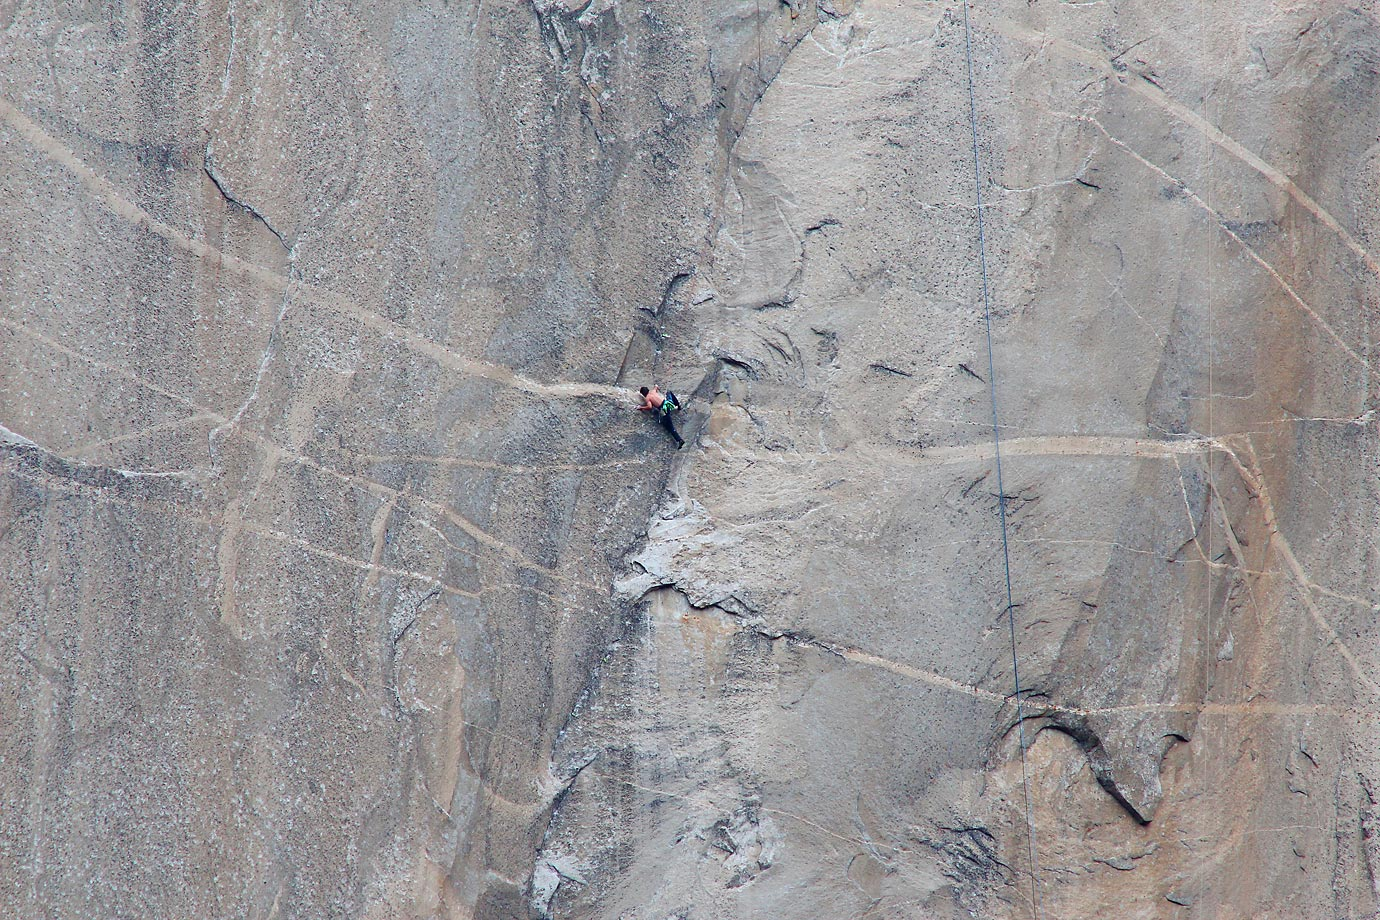 Kevin Jorgeson (shirtless, middle) climbing Pitch 17.